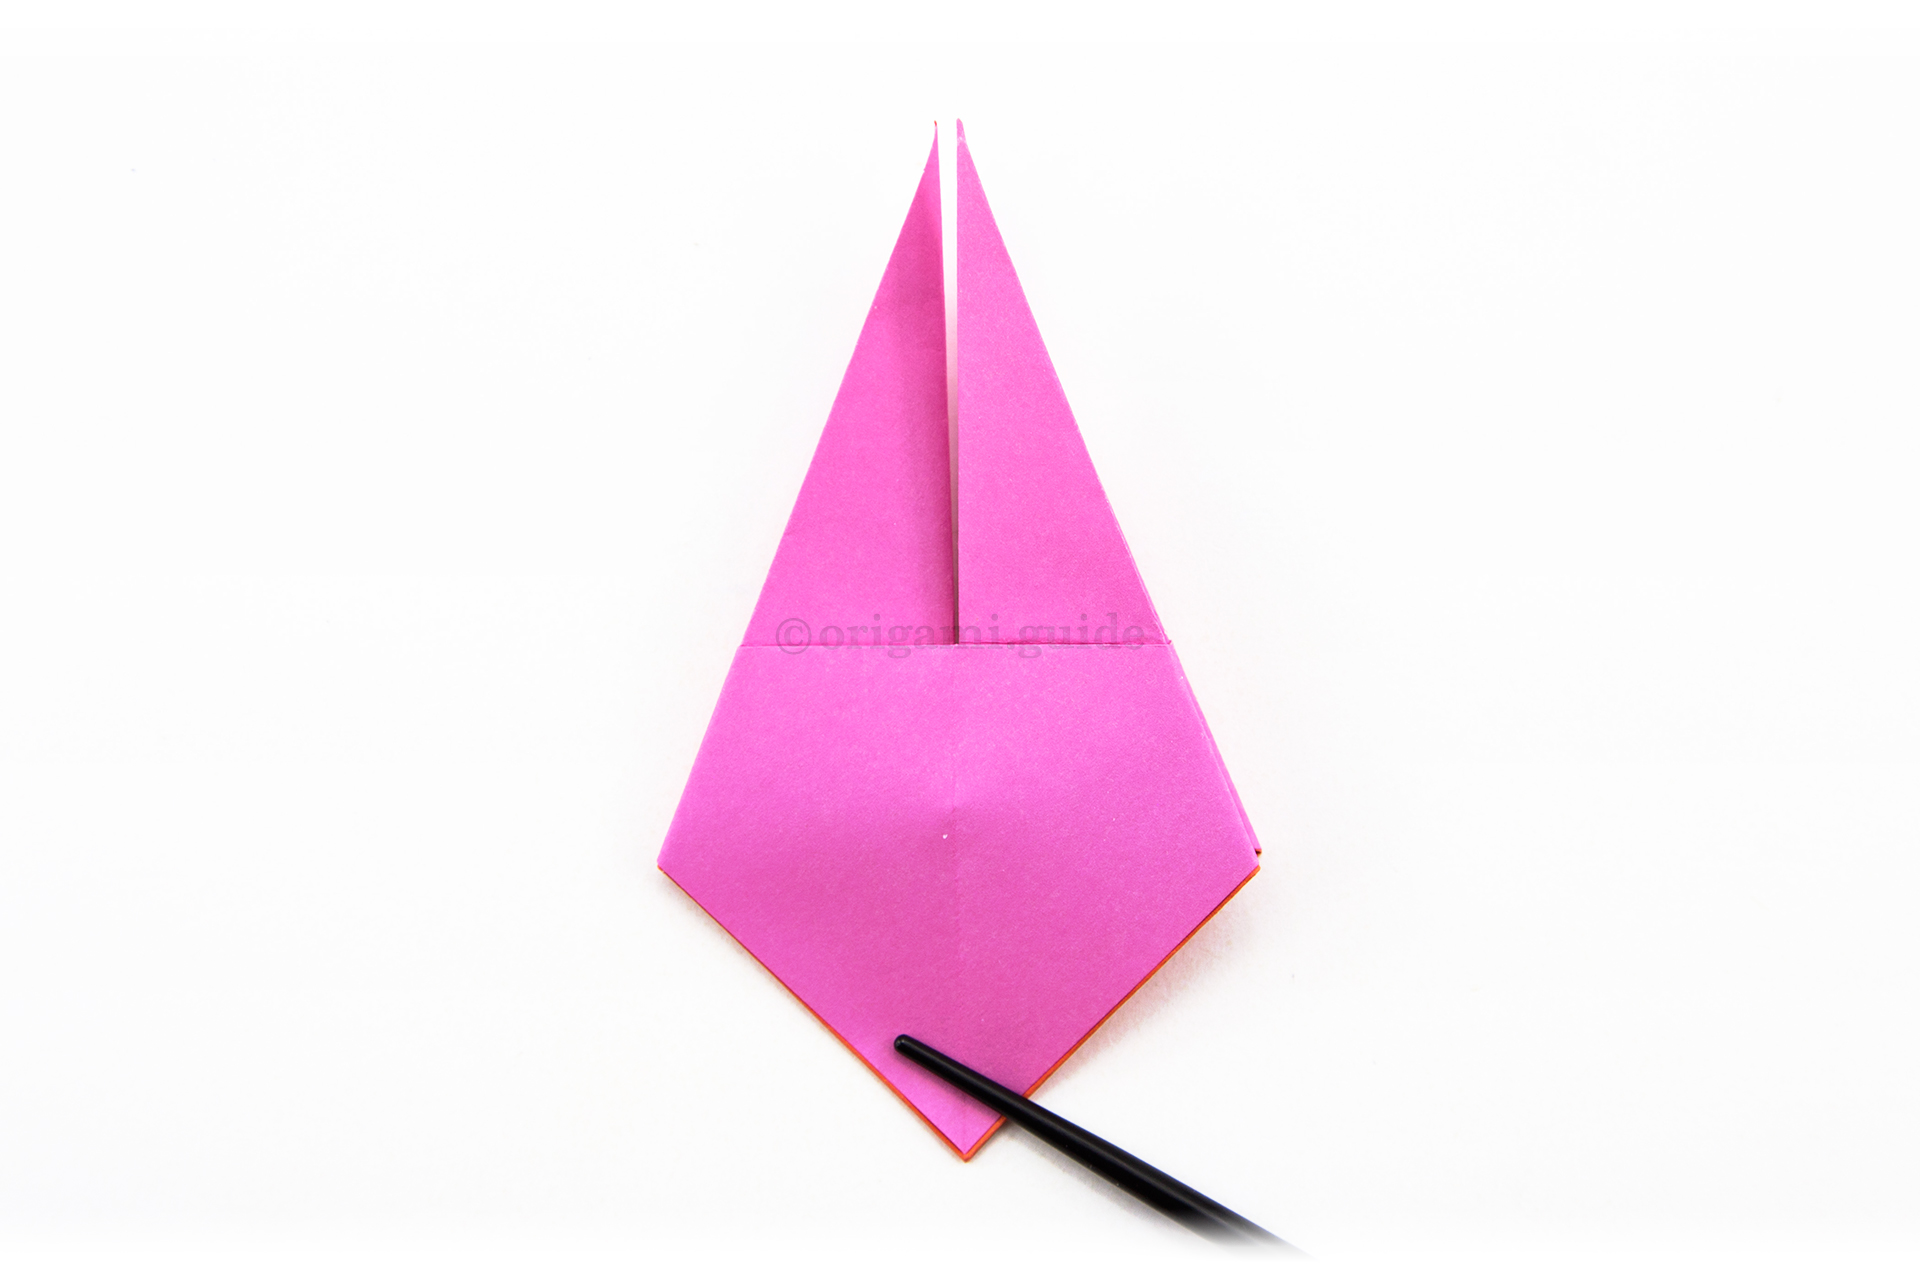 origami candy box - Google Search | Origami candy, Origami candy ... | 1280x1920